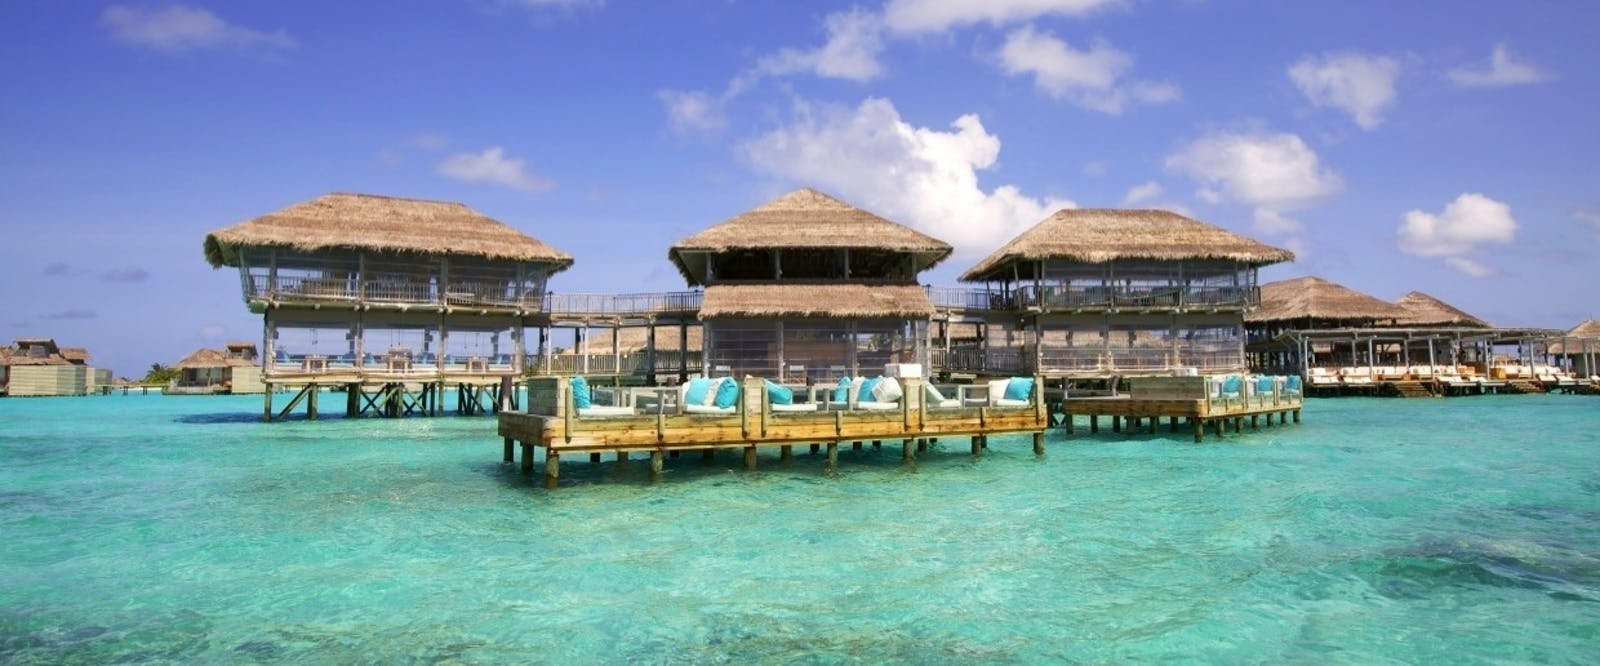 Deck a Dence and Longitude at Six Senses Laamu, Maldives, Indian Ocean